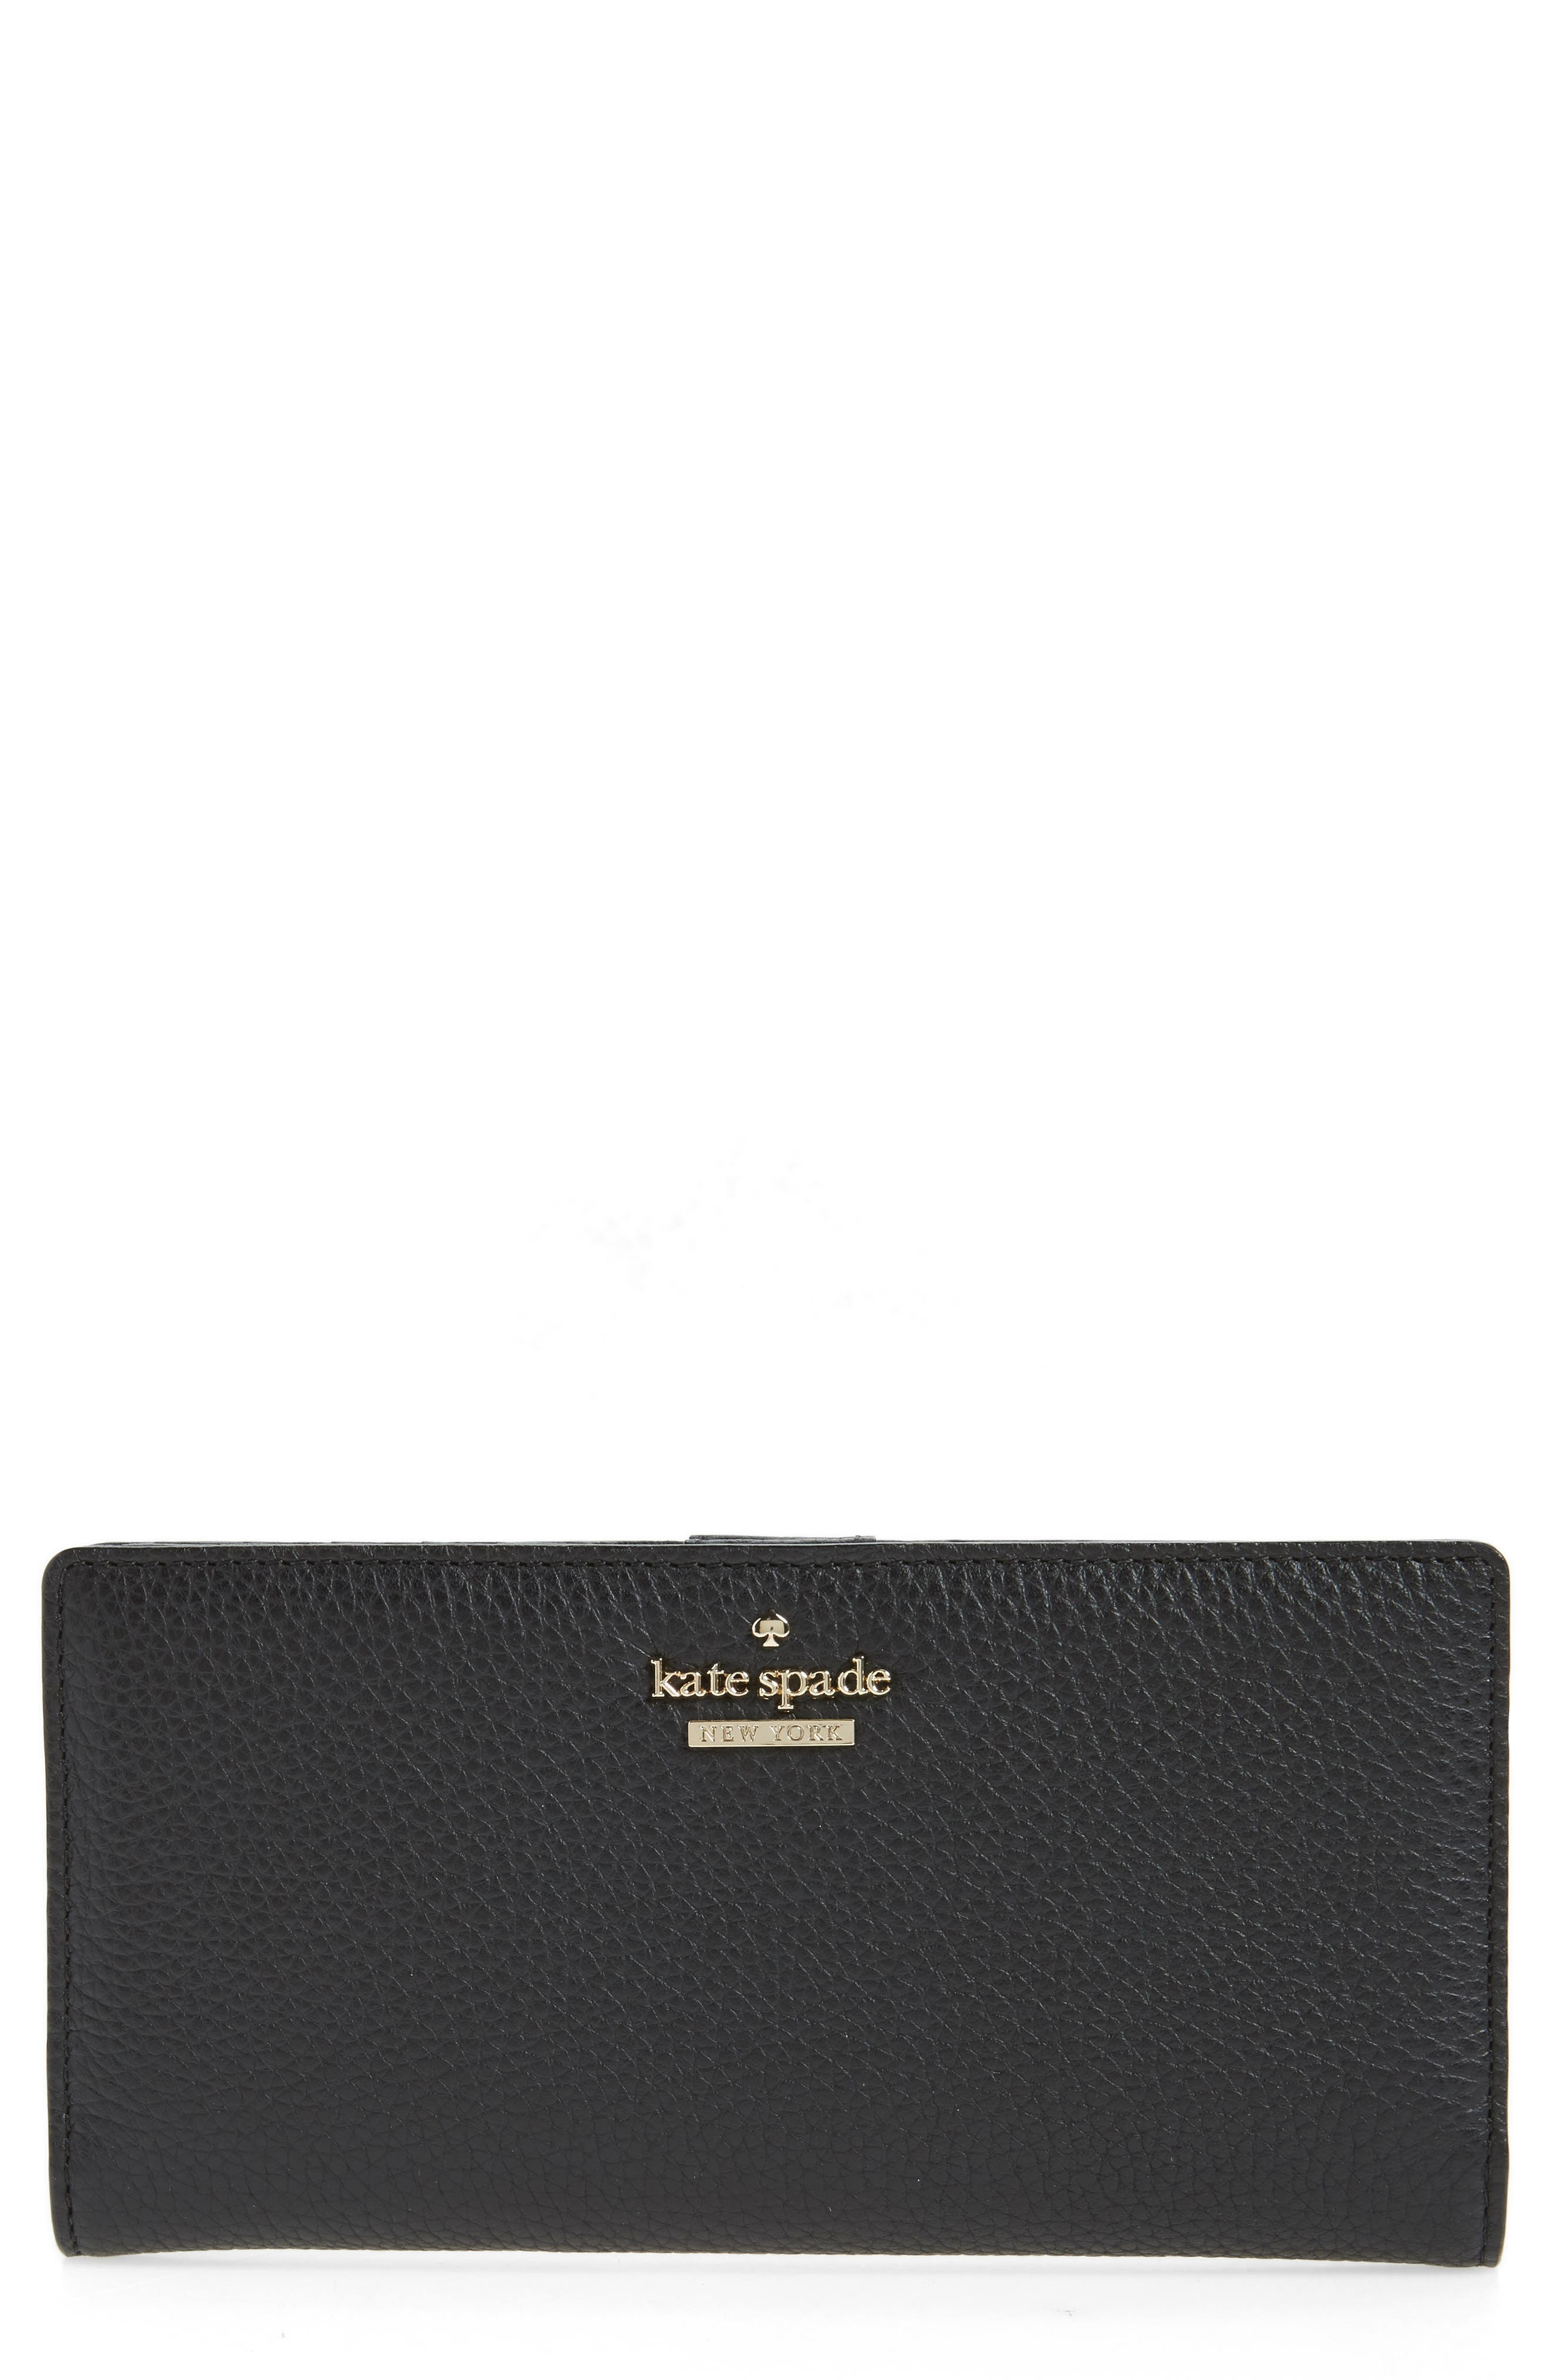 kate spade new york large jackson street - stacy leather wallet